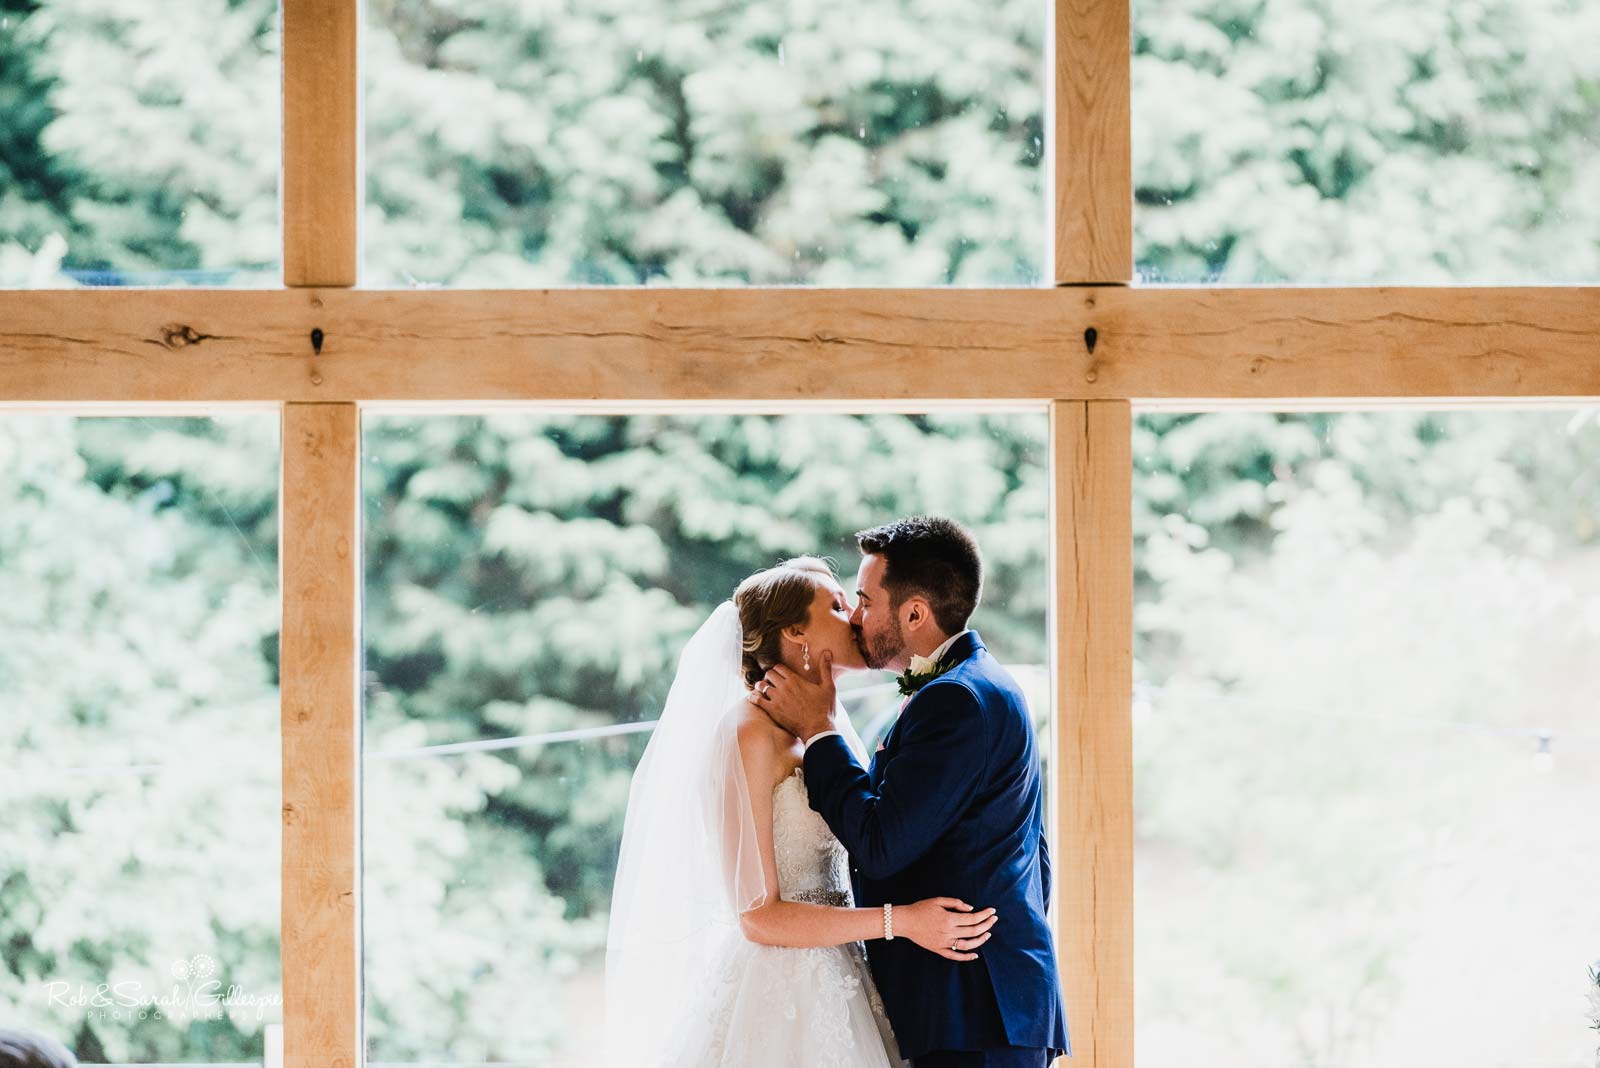 Bride and groom kiss during wedding ceremony at The Mill Barns